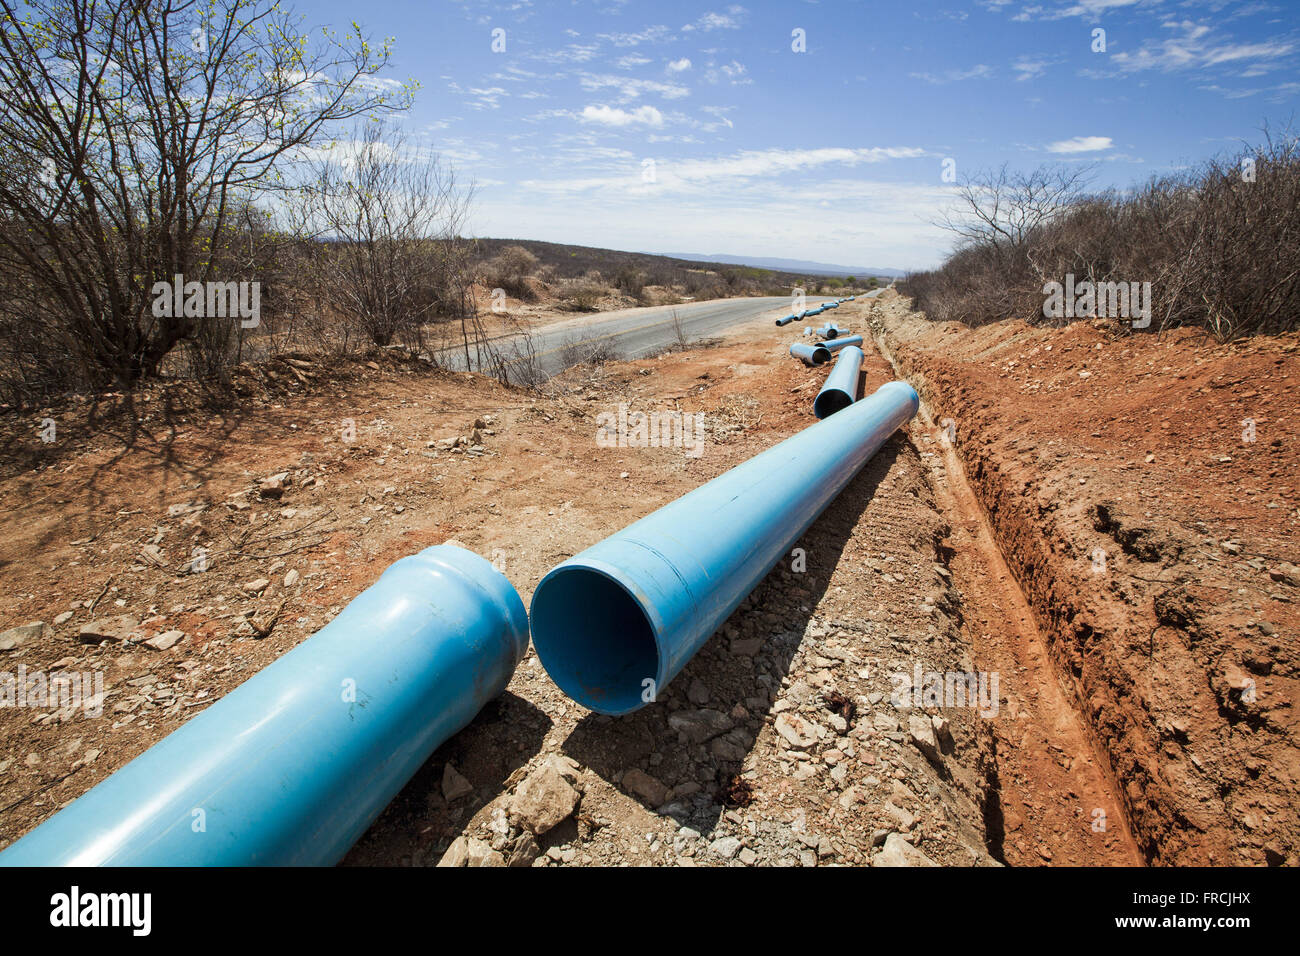 Pipe laying on the side of Route 320 for PE-Pipeline of Pajeu - Stock Image